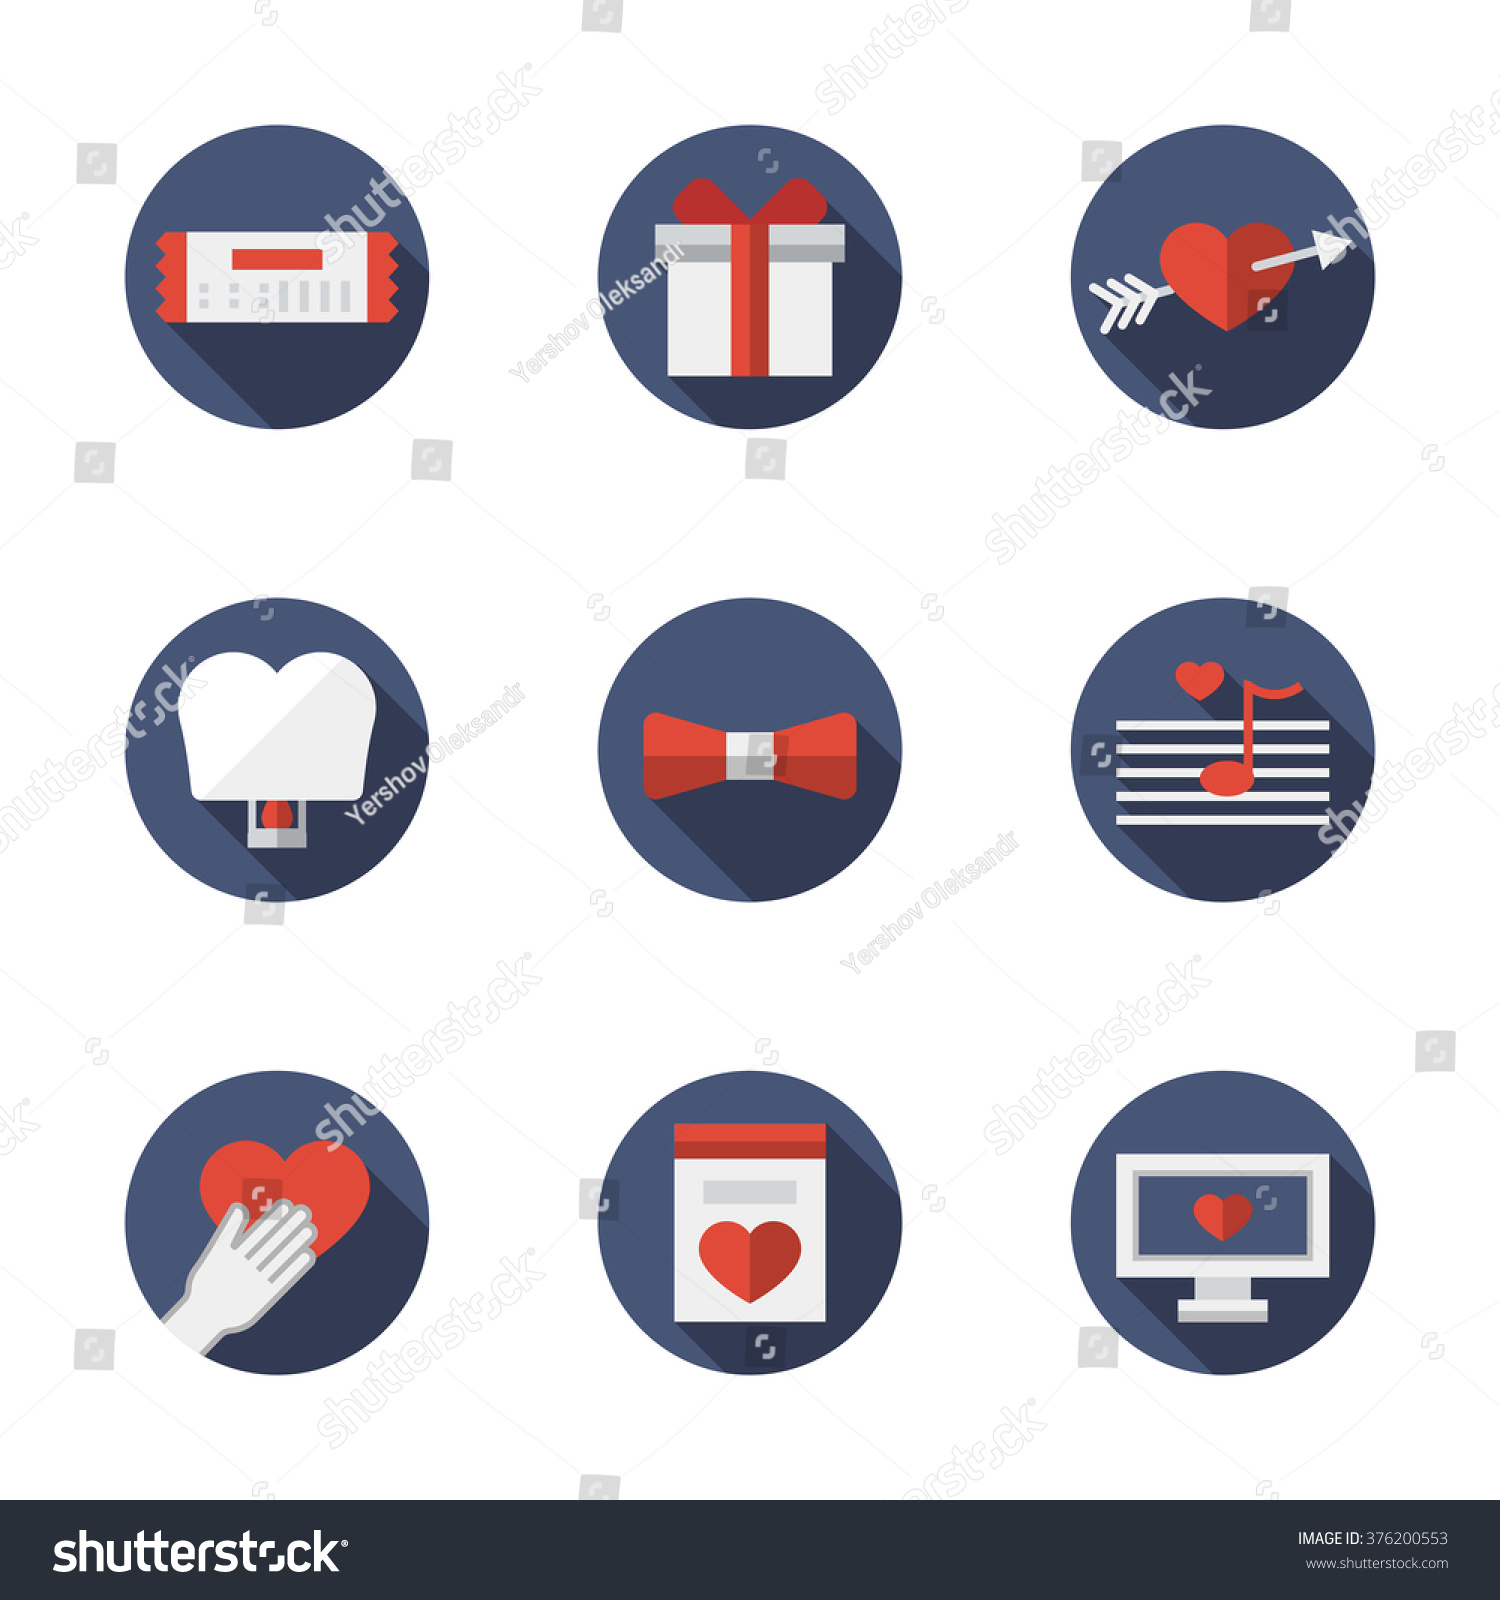 Dating Flirting Elements Love Relationships Proposal Stock Vector